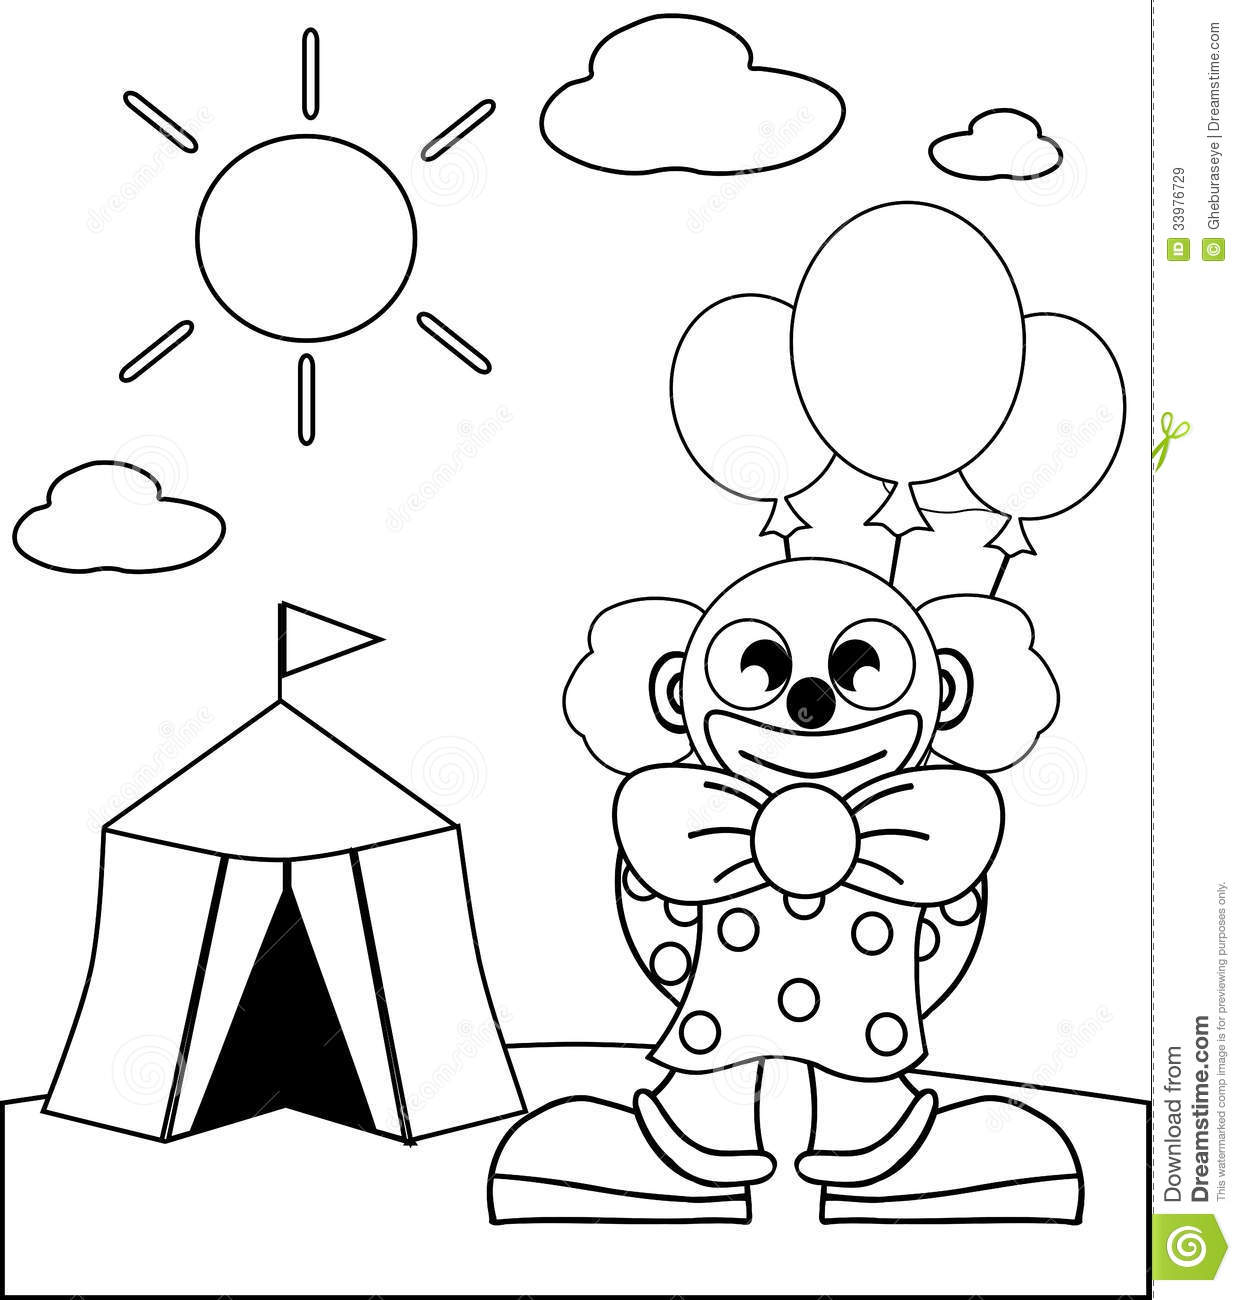 Coloring Clown Royalty Free Stock Images